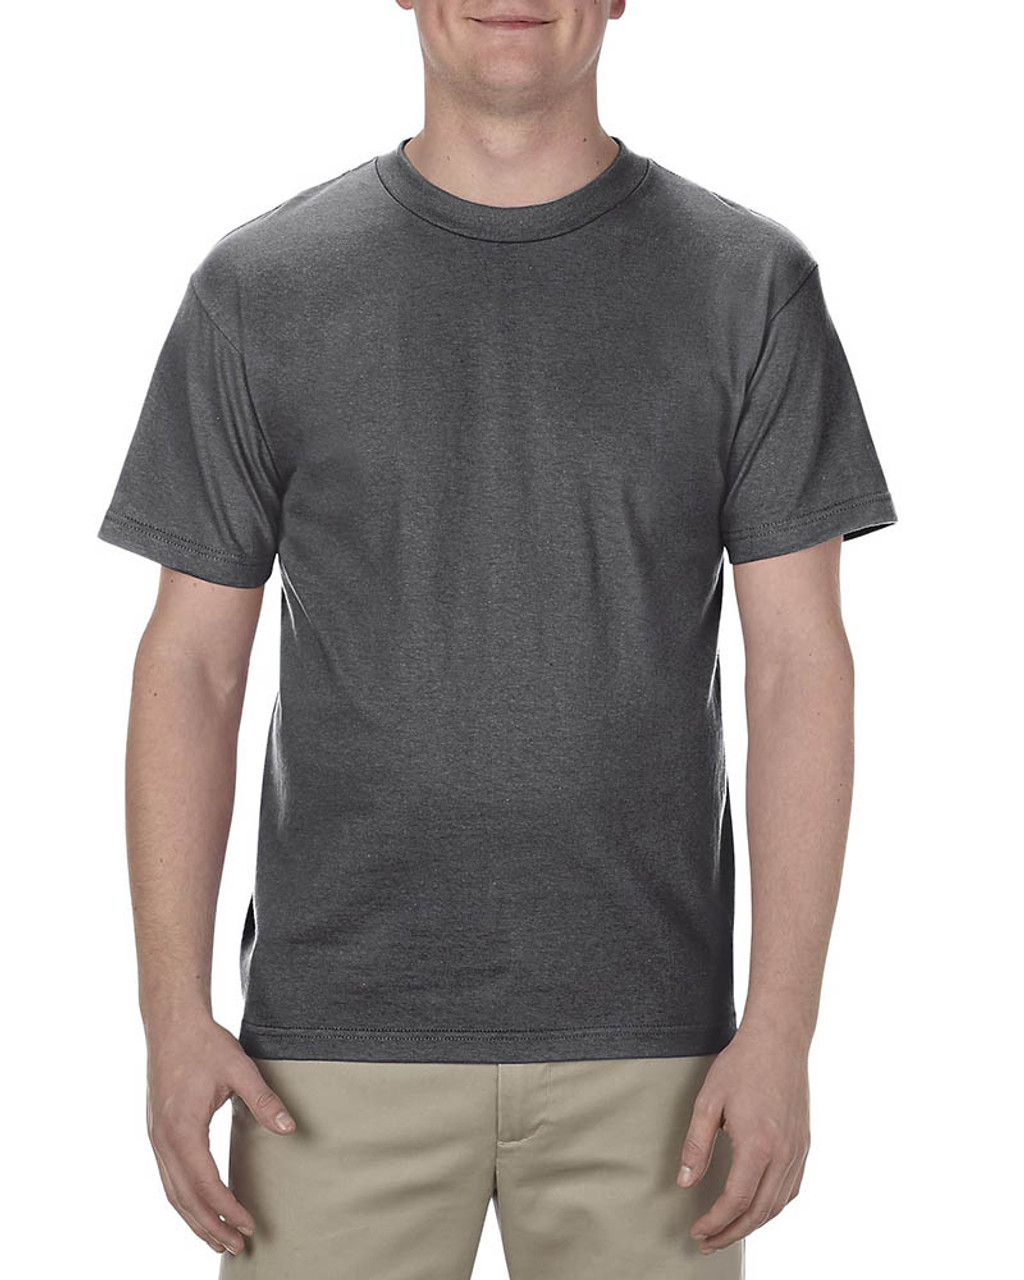 Charcoal Heather - AL1301 Alstyle Adult 6.0 oz., 100% Cotton T-Shirt   BlankClothing.ca